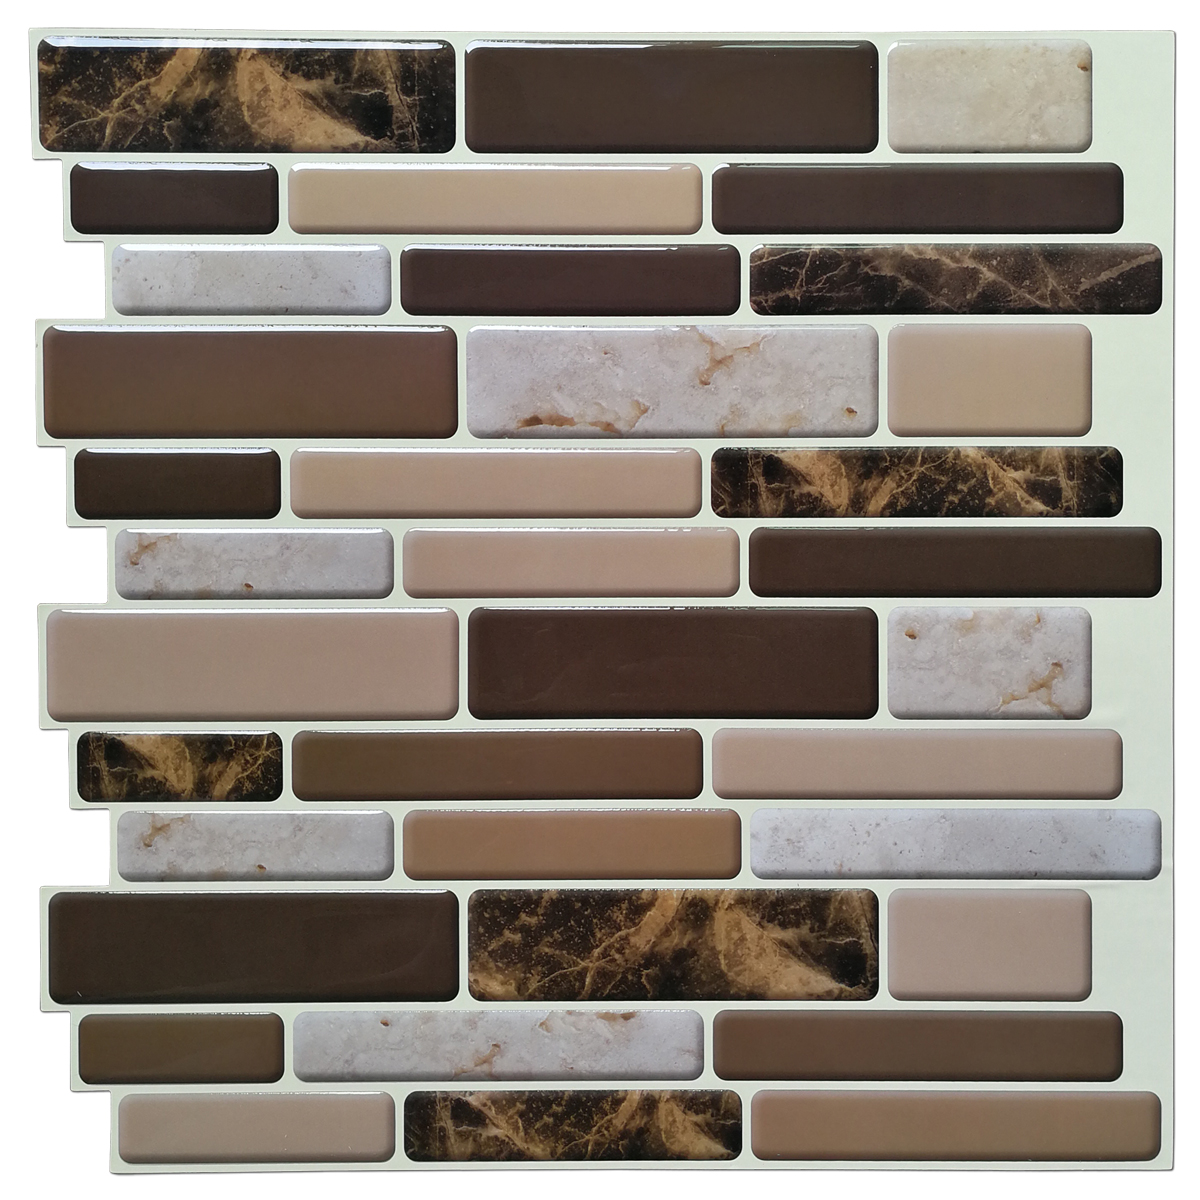 A17040 -  Premium Anti Mold Peel and Stick Wall Tile Marble Style, Set of 6